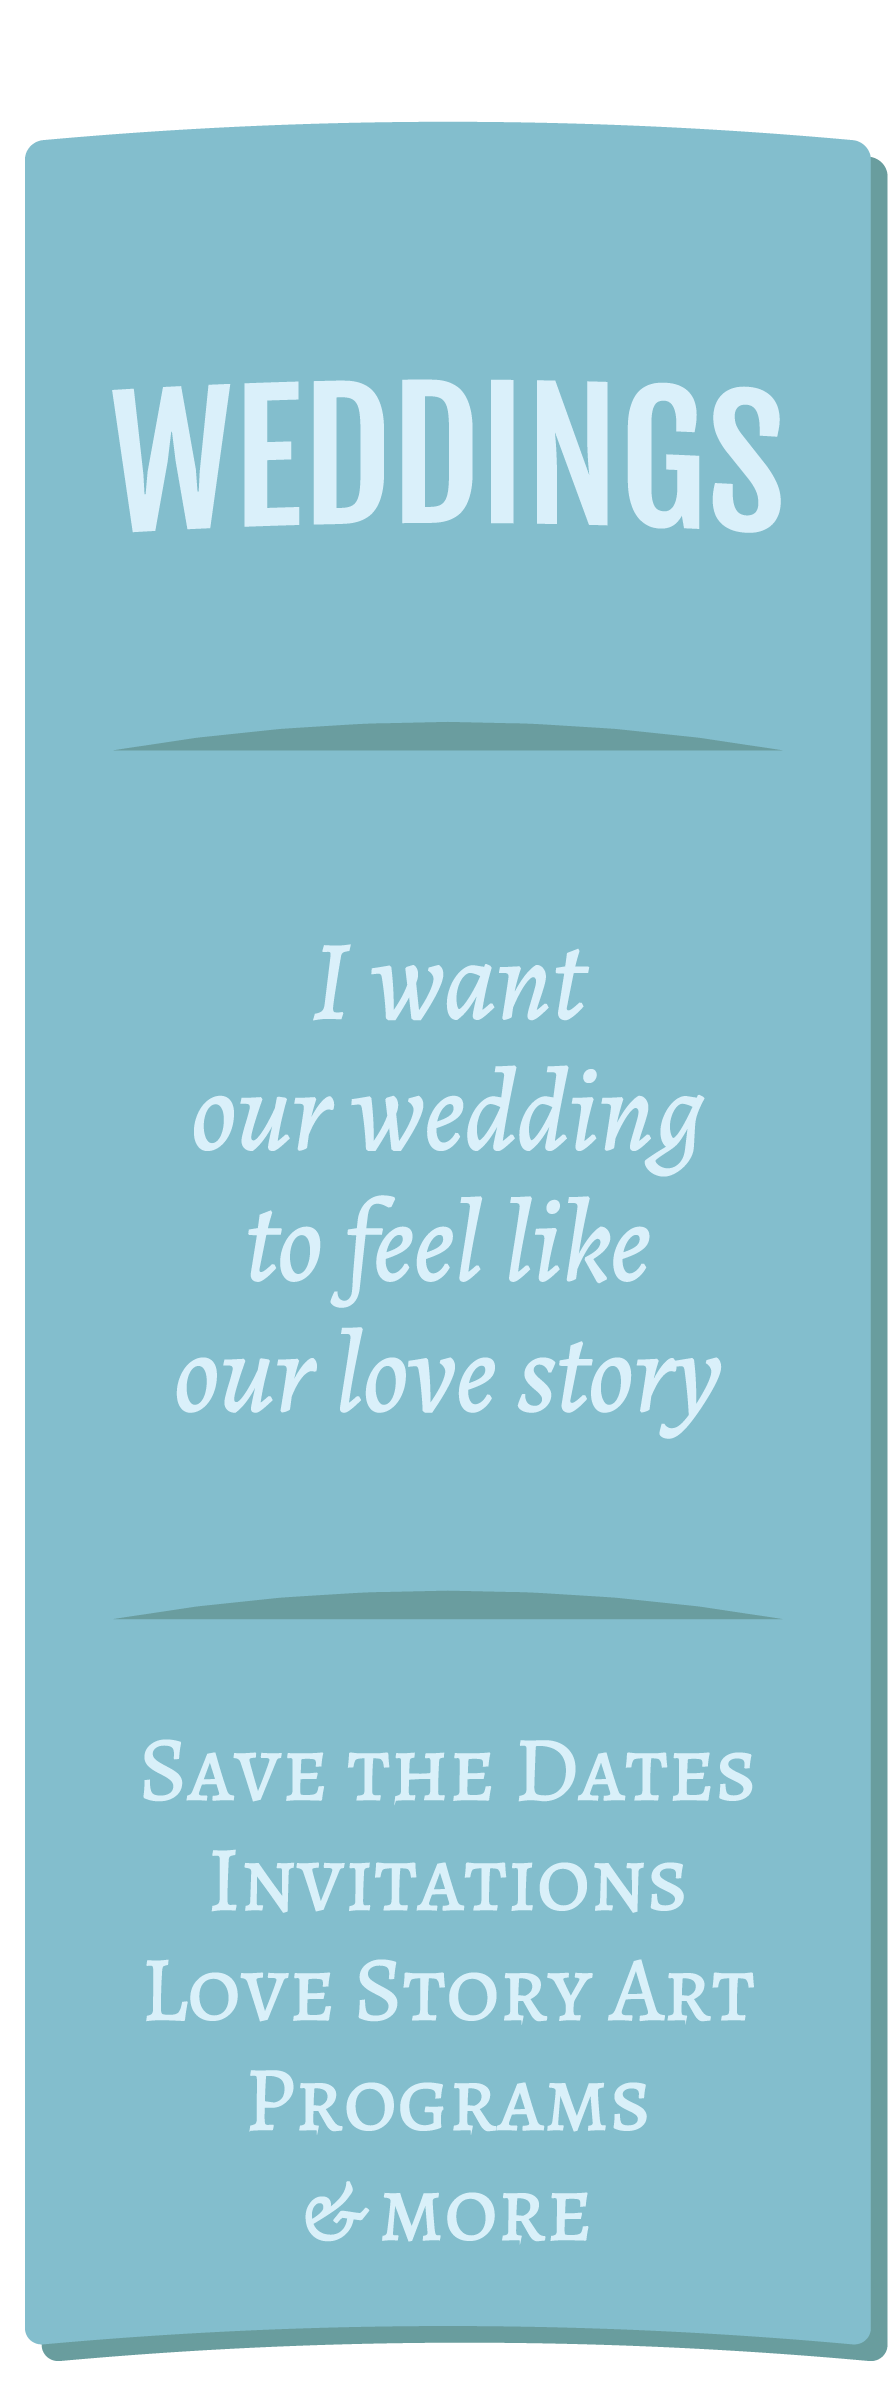 Weddings | I want our wedding to feel like our love story | Invitations, Save the Dates, Programs, Love Story Art and more